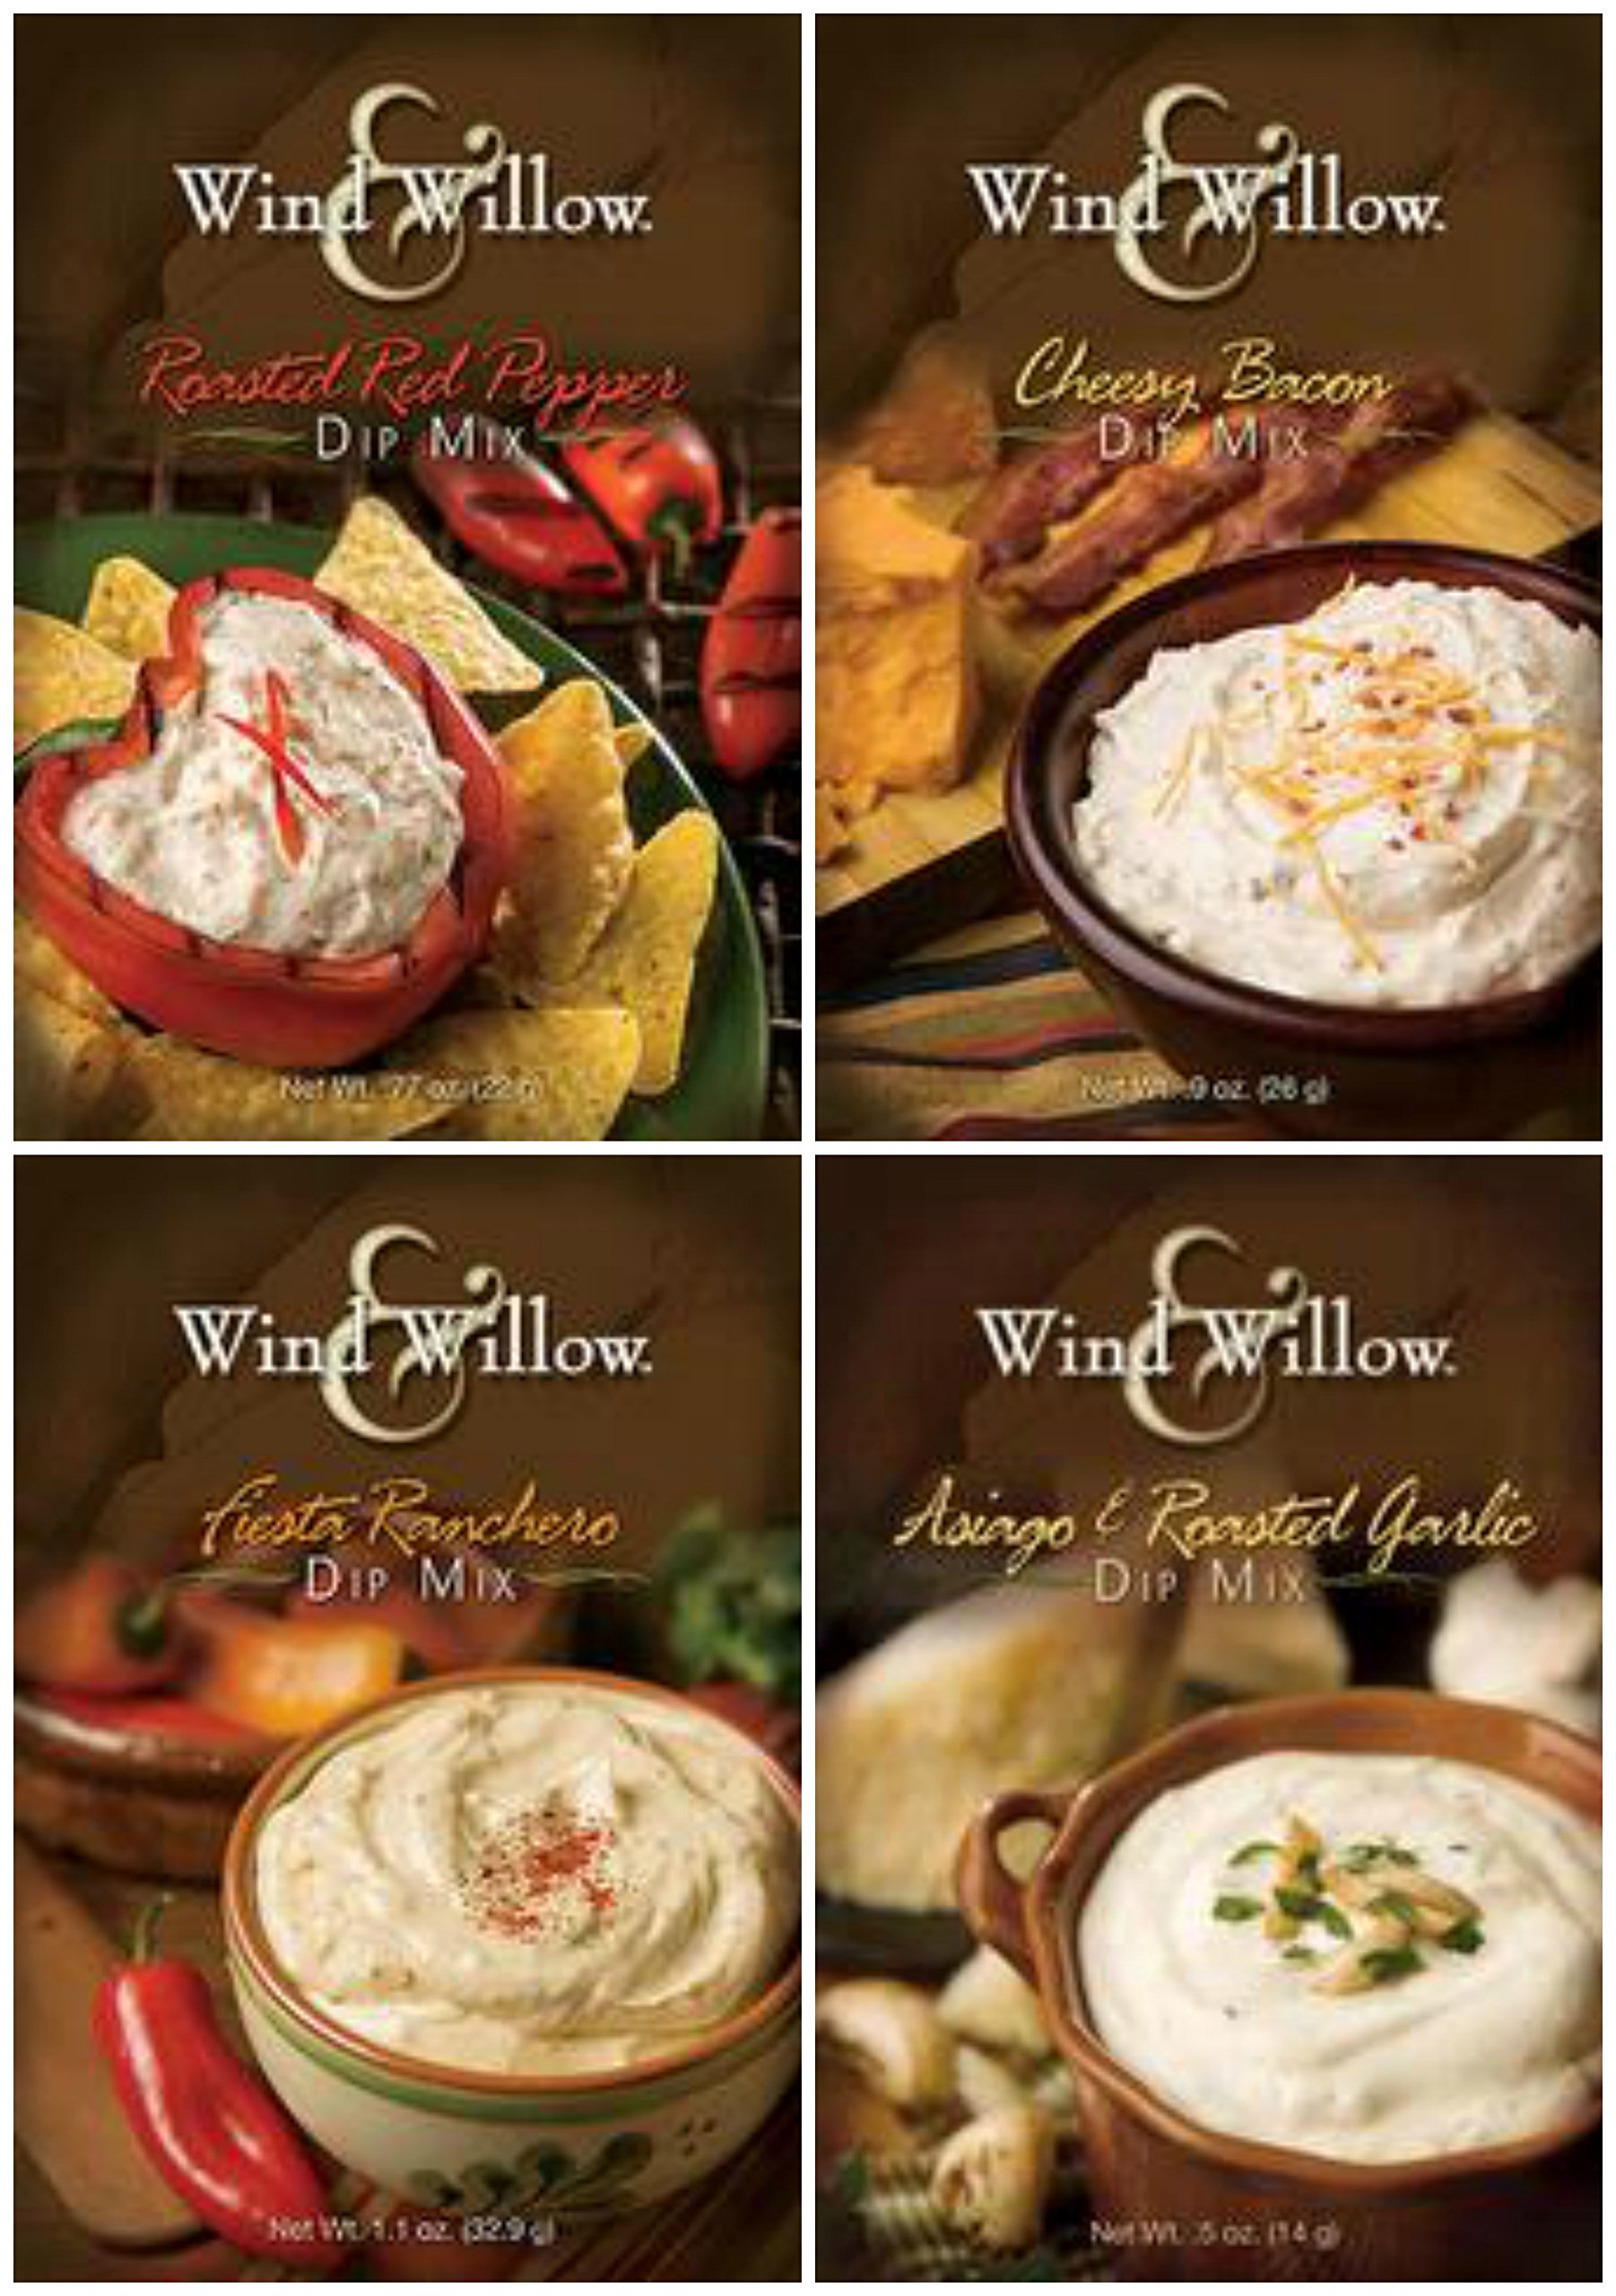 Wind & Willow Dip Mix 4 Flavor Variety Bundle: Cheesy Bacon, Roasted Red Pepper, Asagio and Roasted Garlic, and Fiesta Ranchero (4 Packs Total) by Wind & Willow